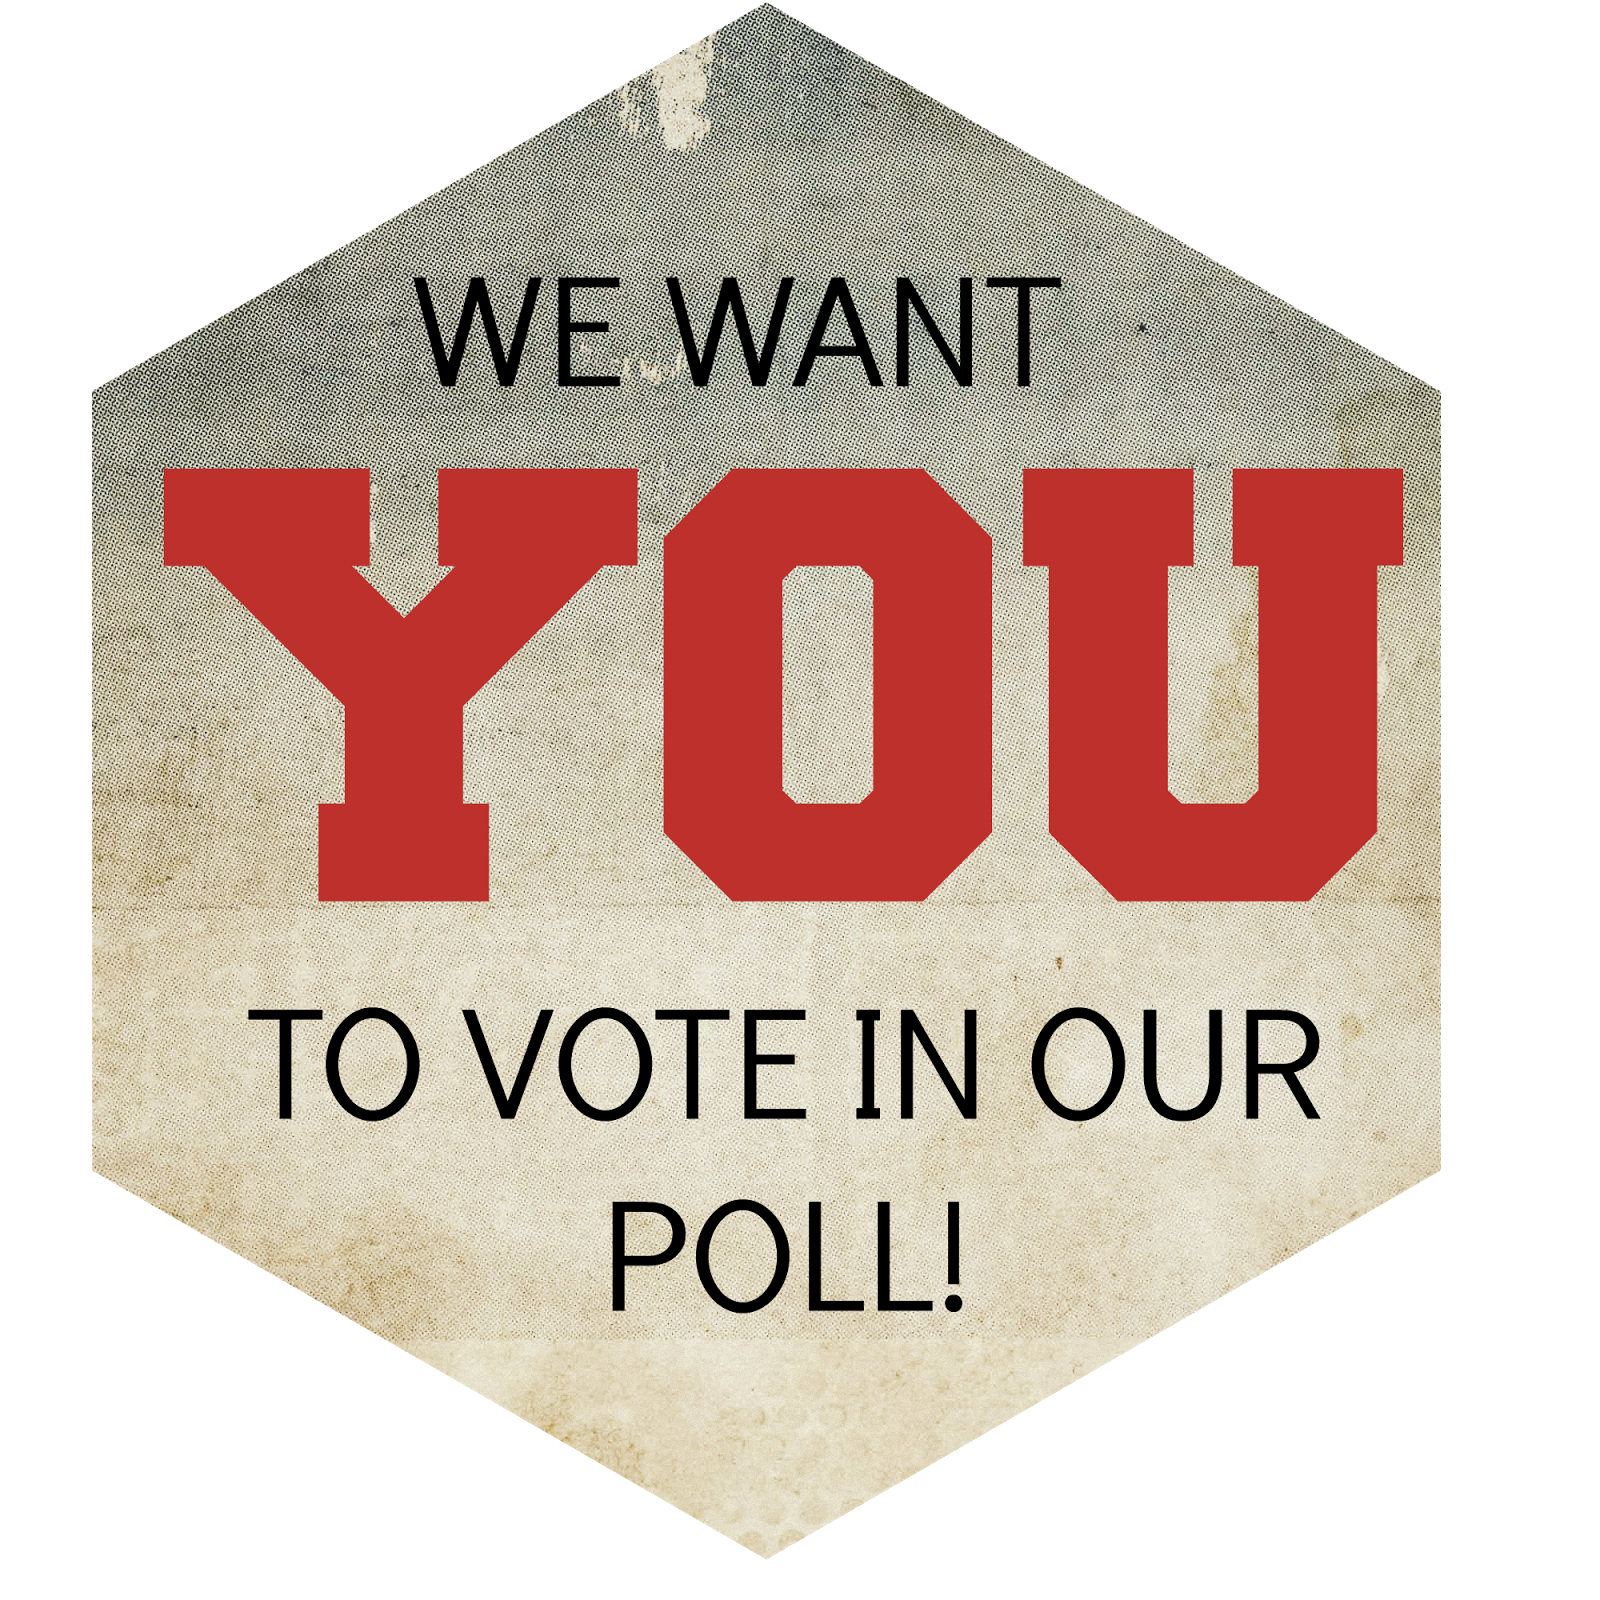 We want you to vote in our poll